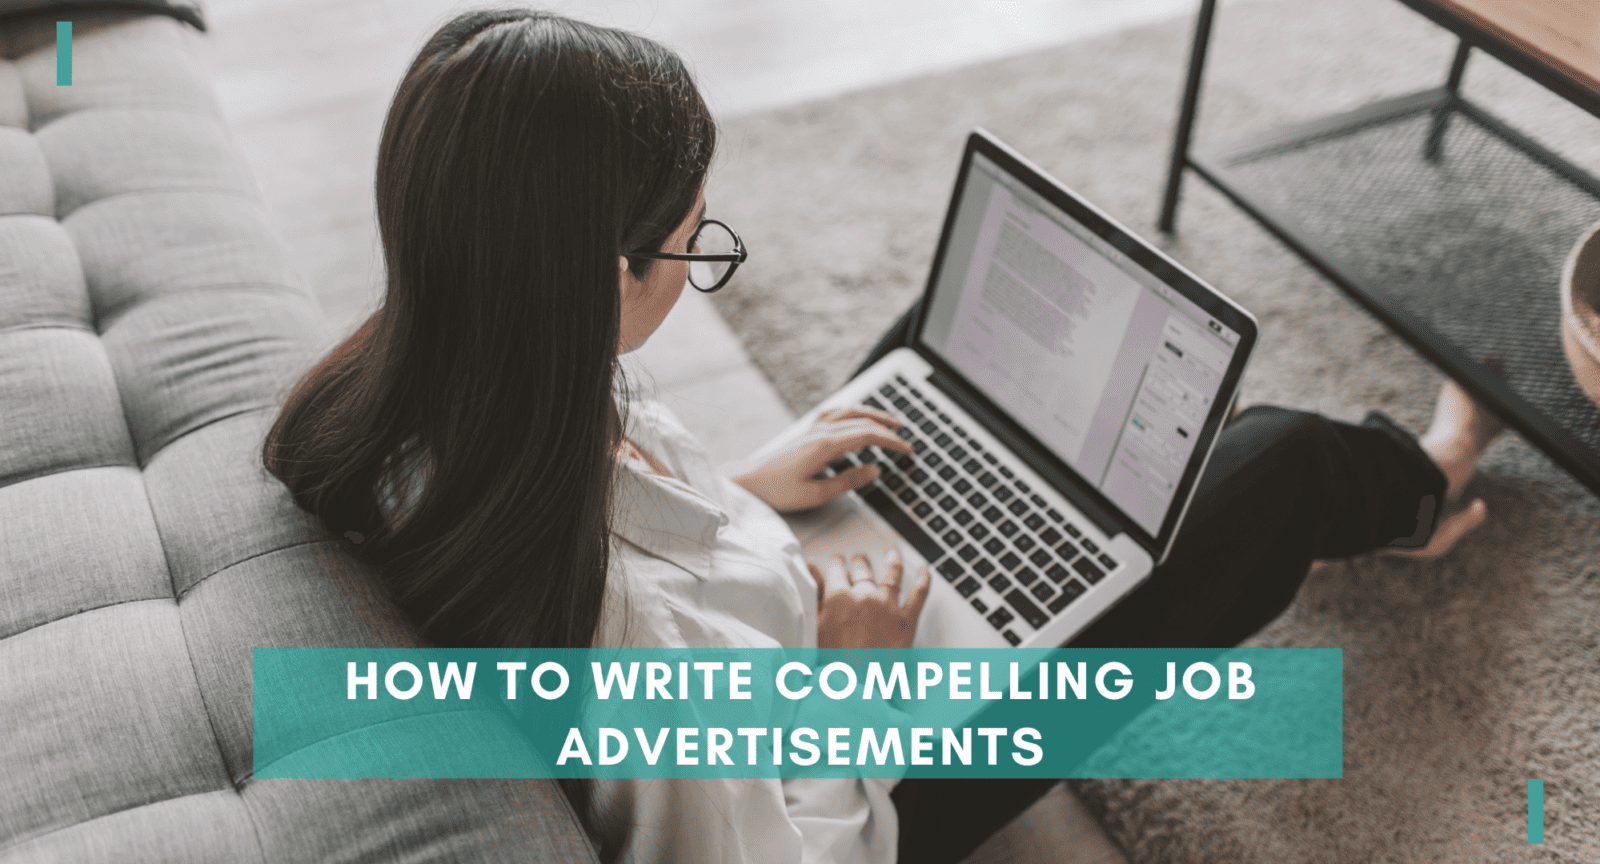 How To Write Compelling Job Advertisements. How to write job advertisements, Job advertisements guide